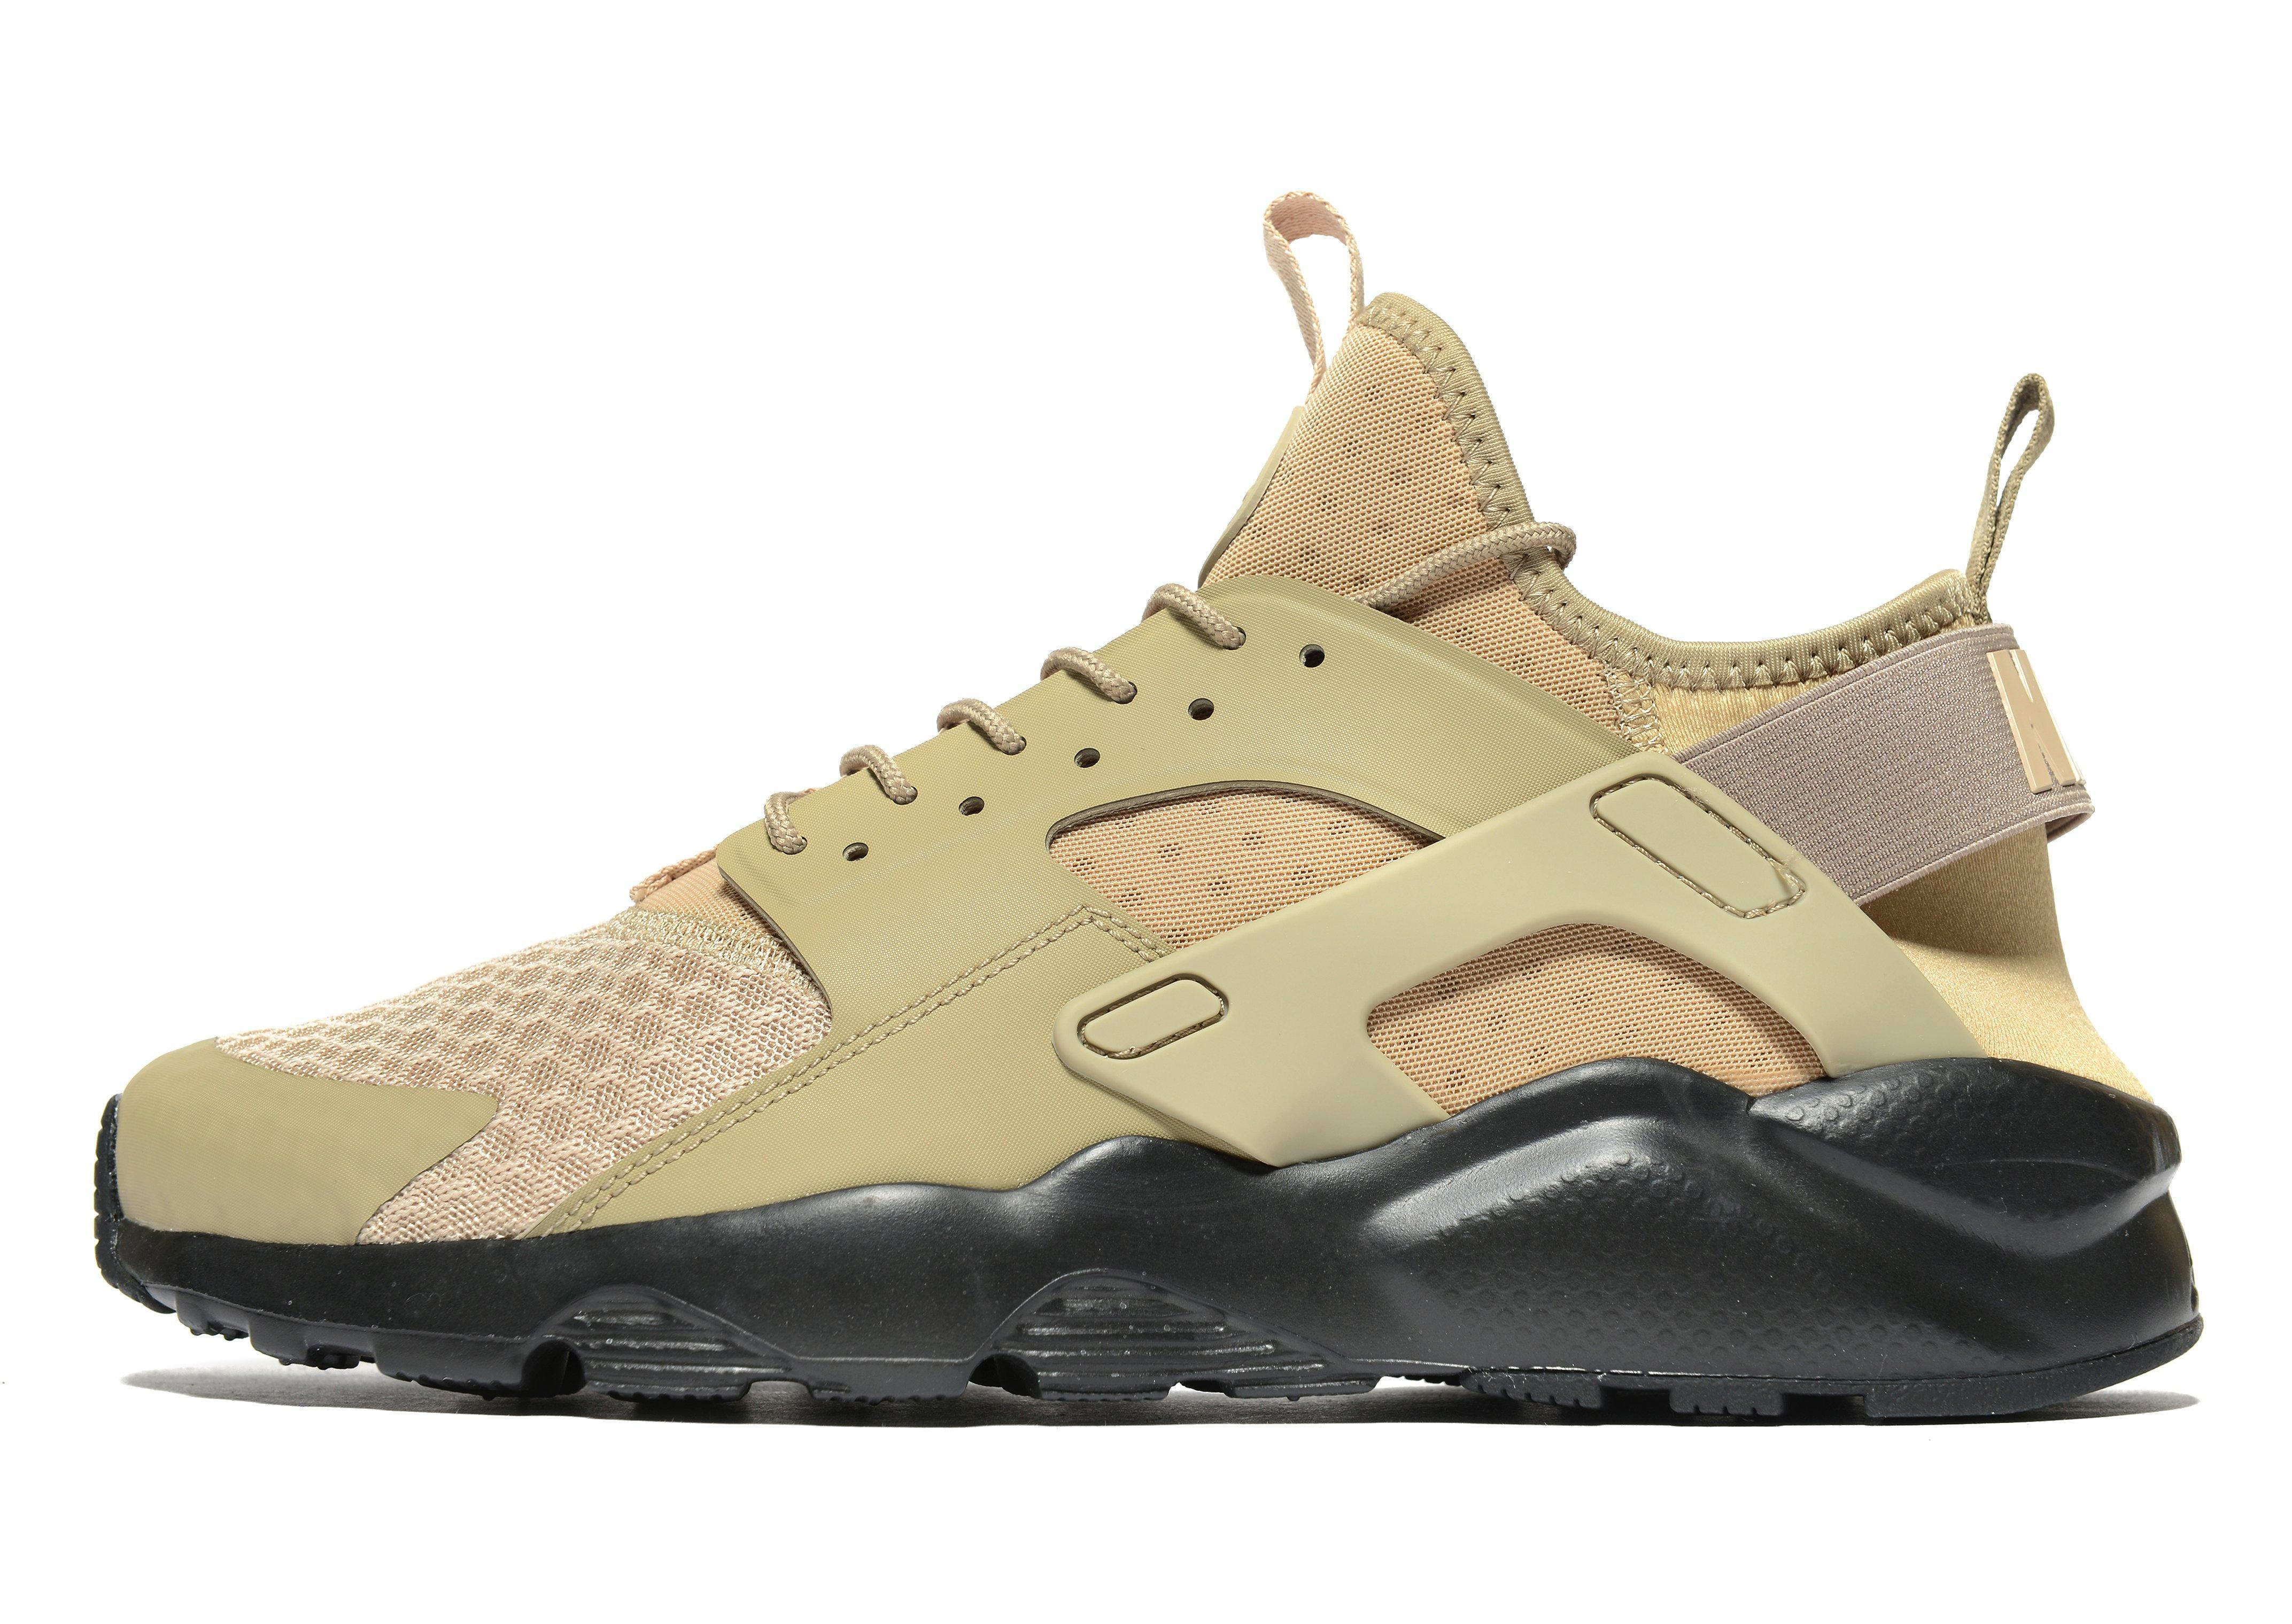 a2038d28e0d Gallery. Previously sold at  JD Sports · Men s Nike Huarache ...